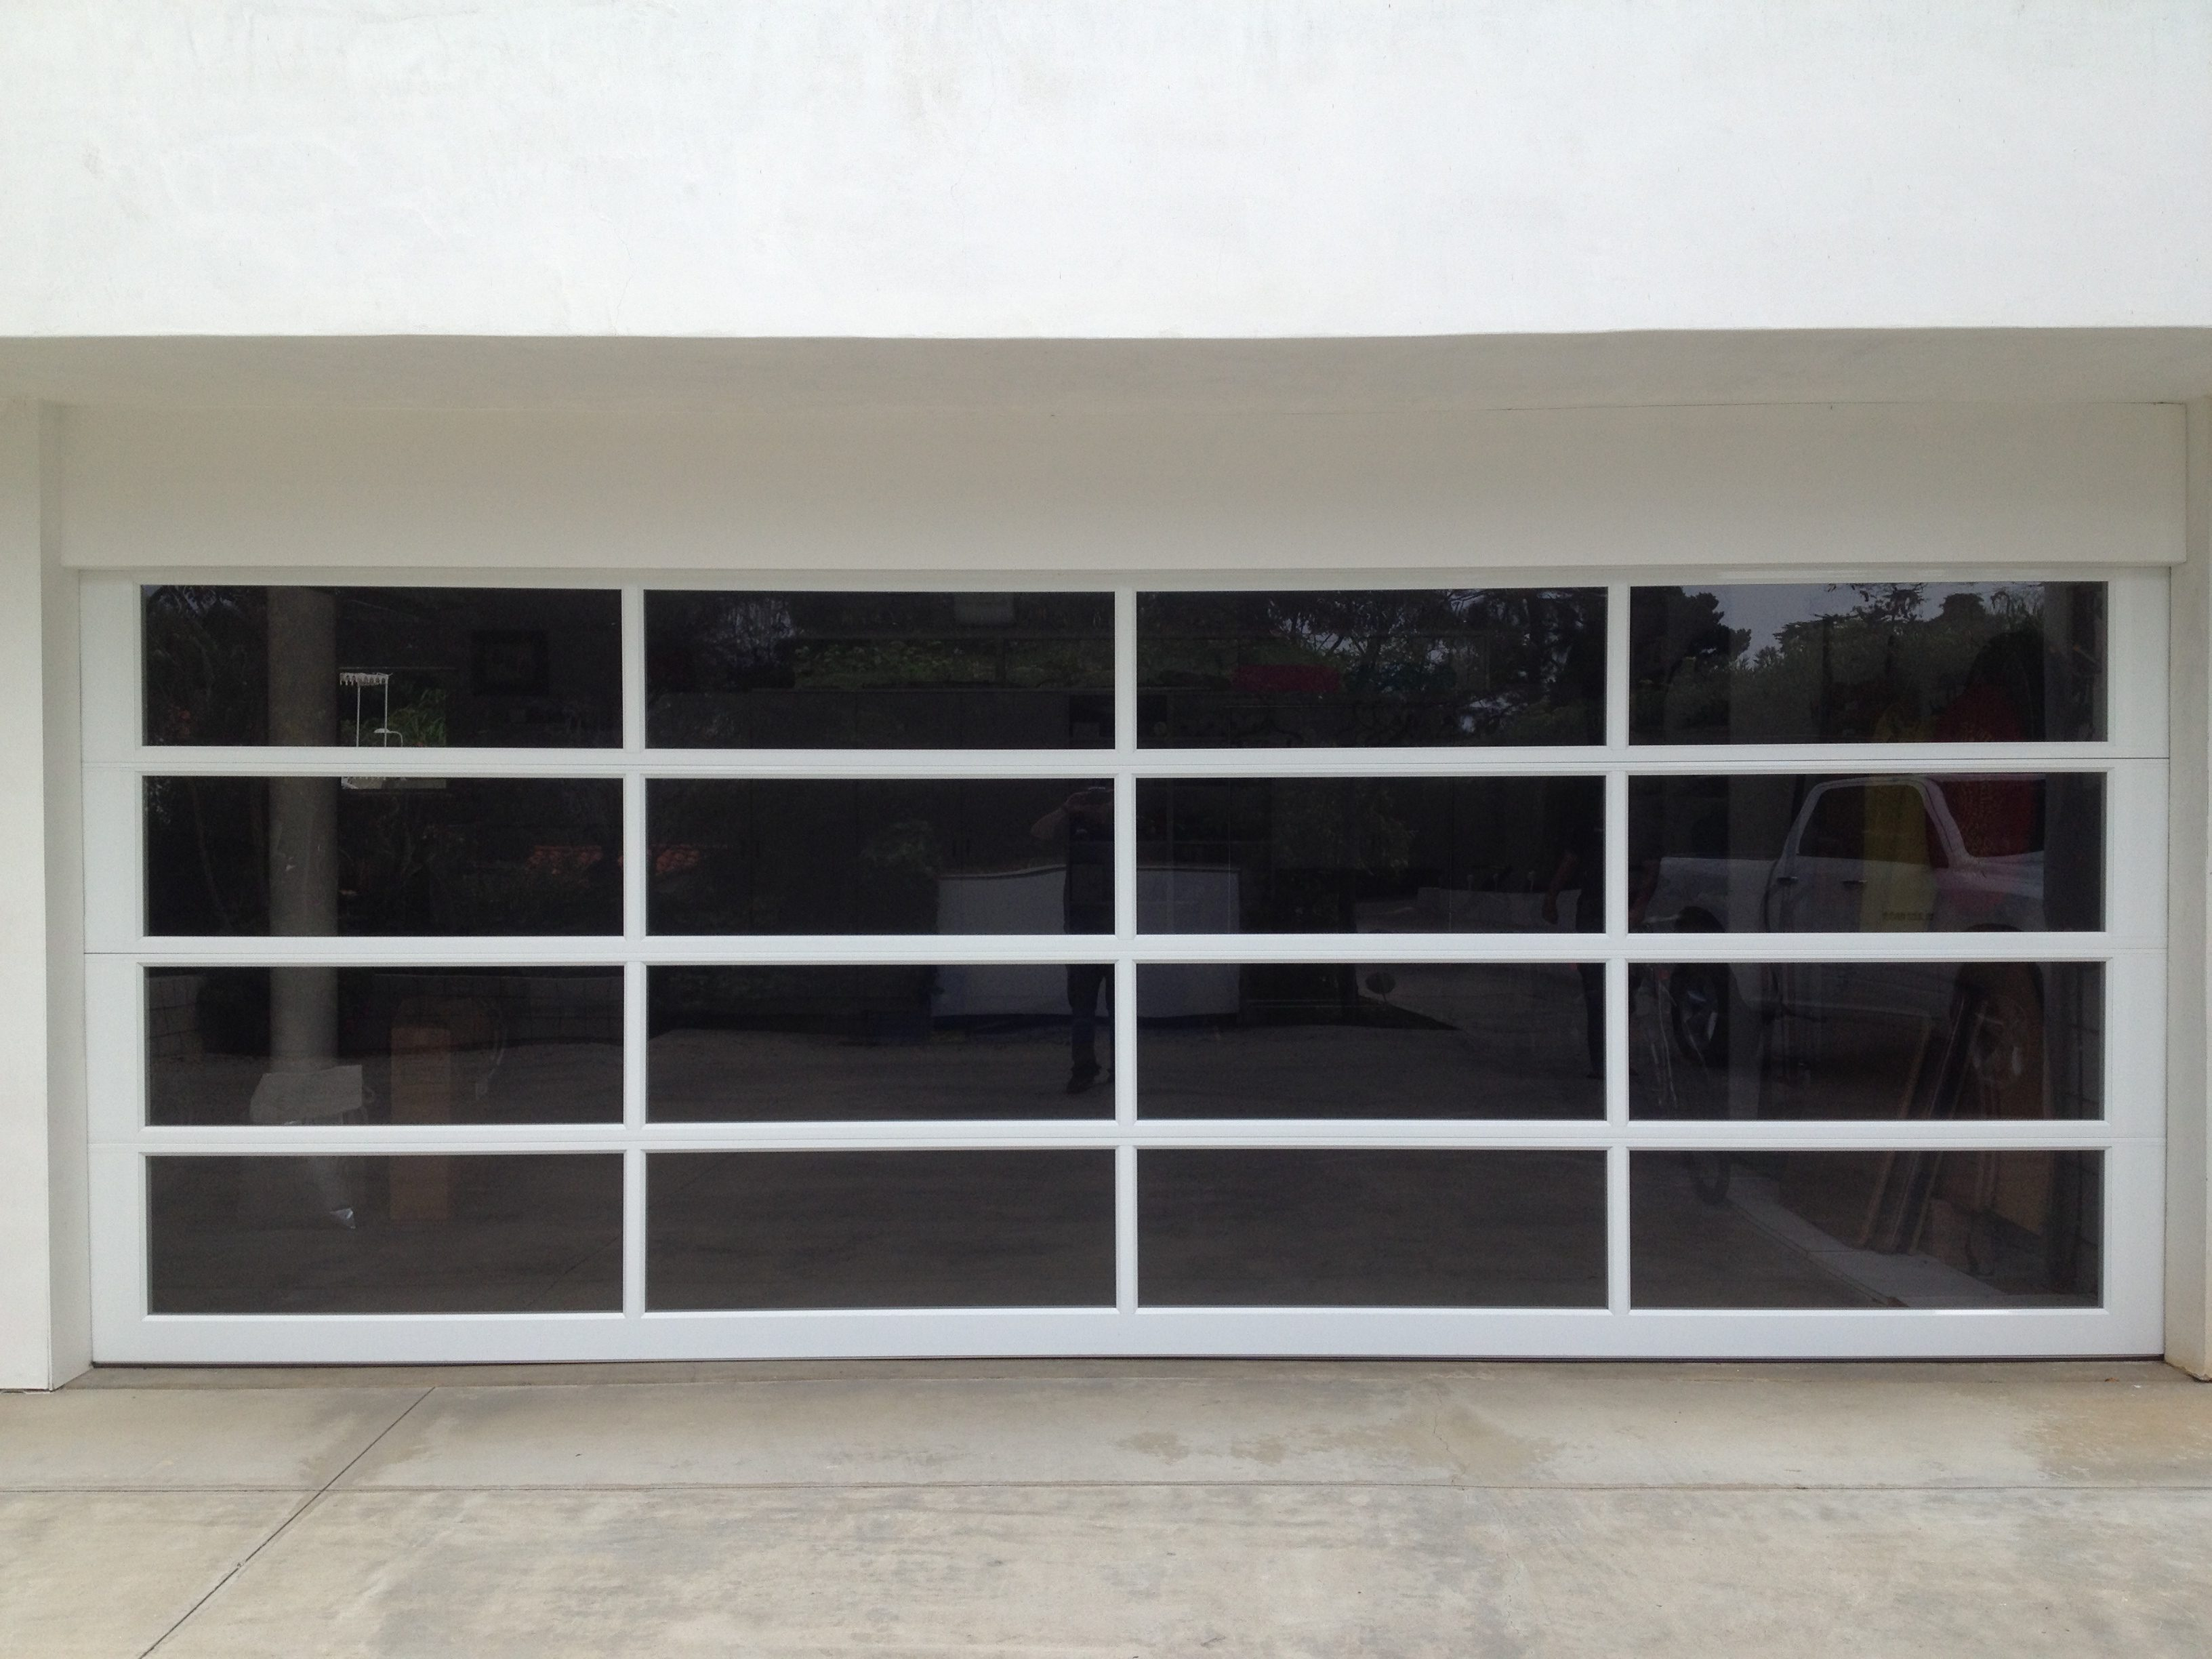 garage best pinterest inside full loversiq door modern plain intended exterior commercial images doors vista for on clear view aluminum glass